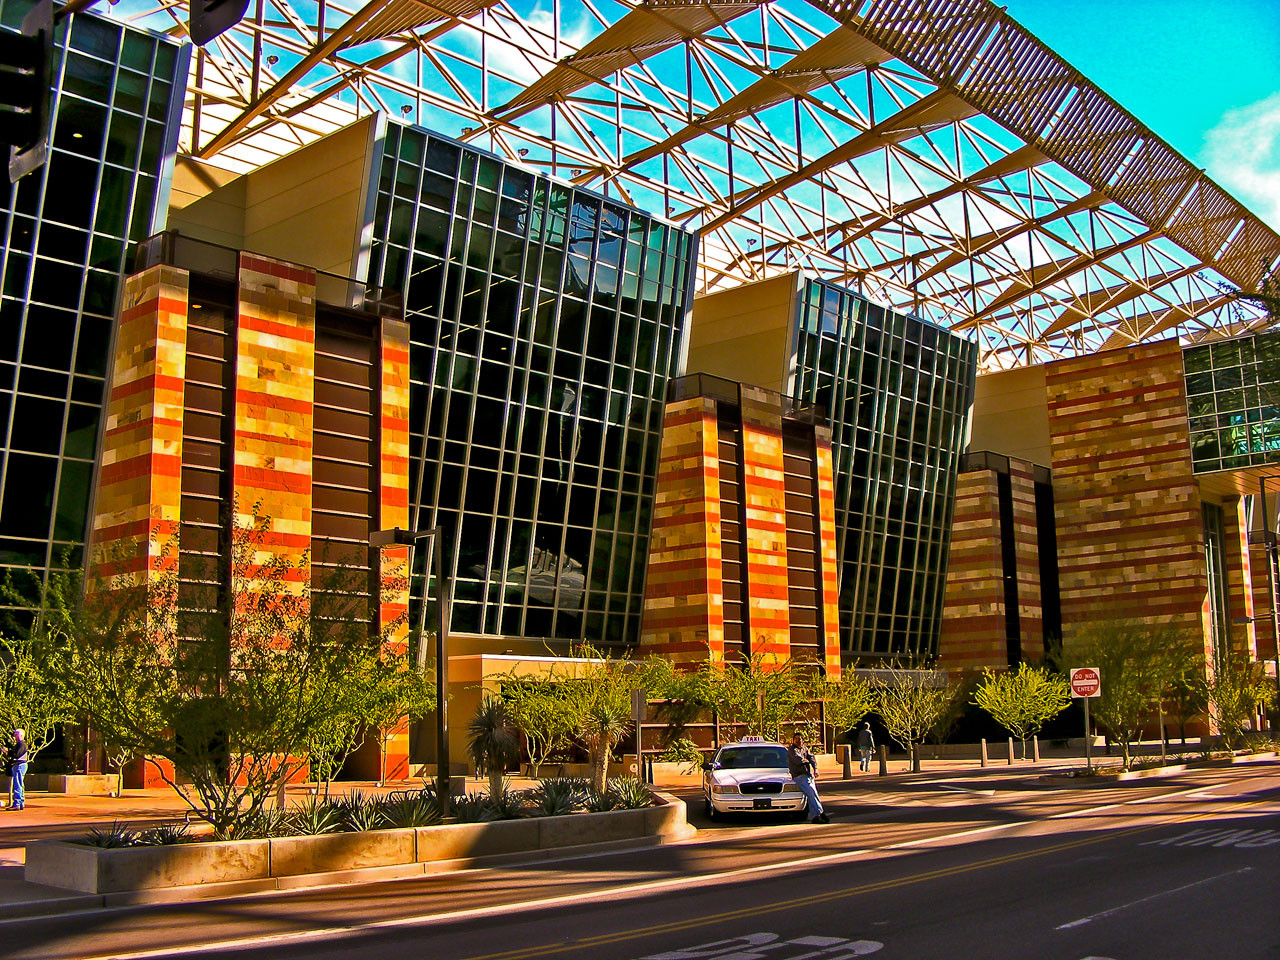 phoenix-convention-center-1-1.jpg